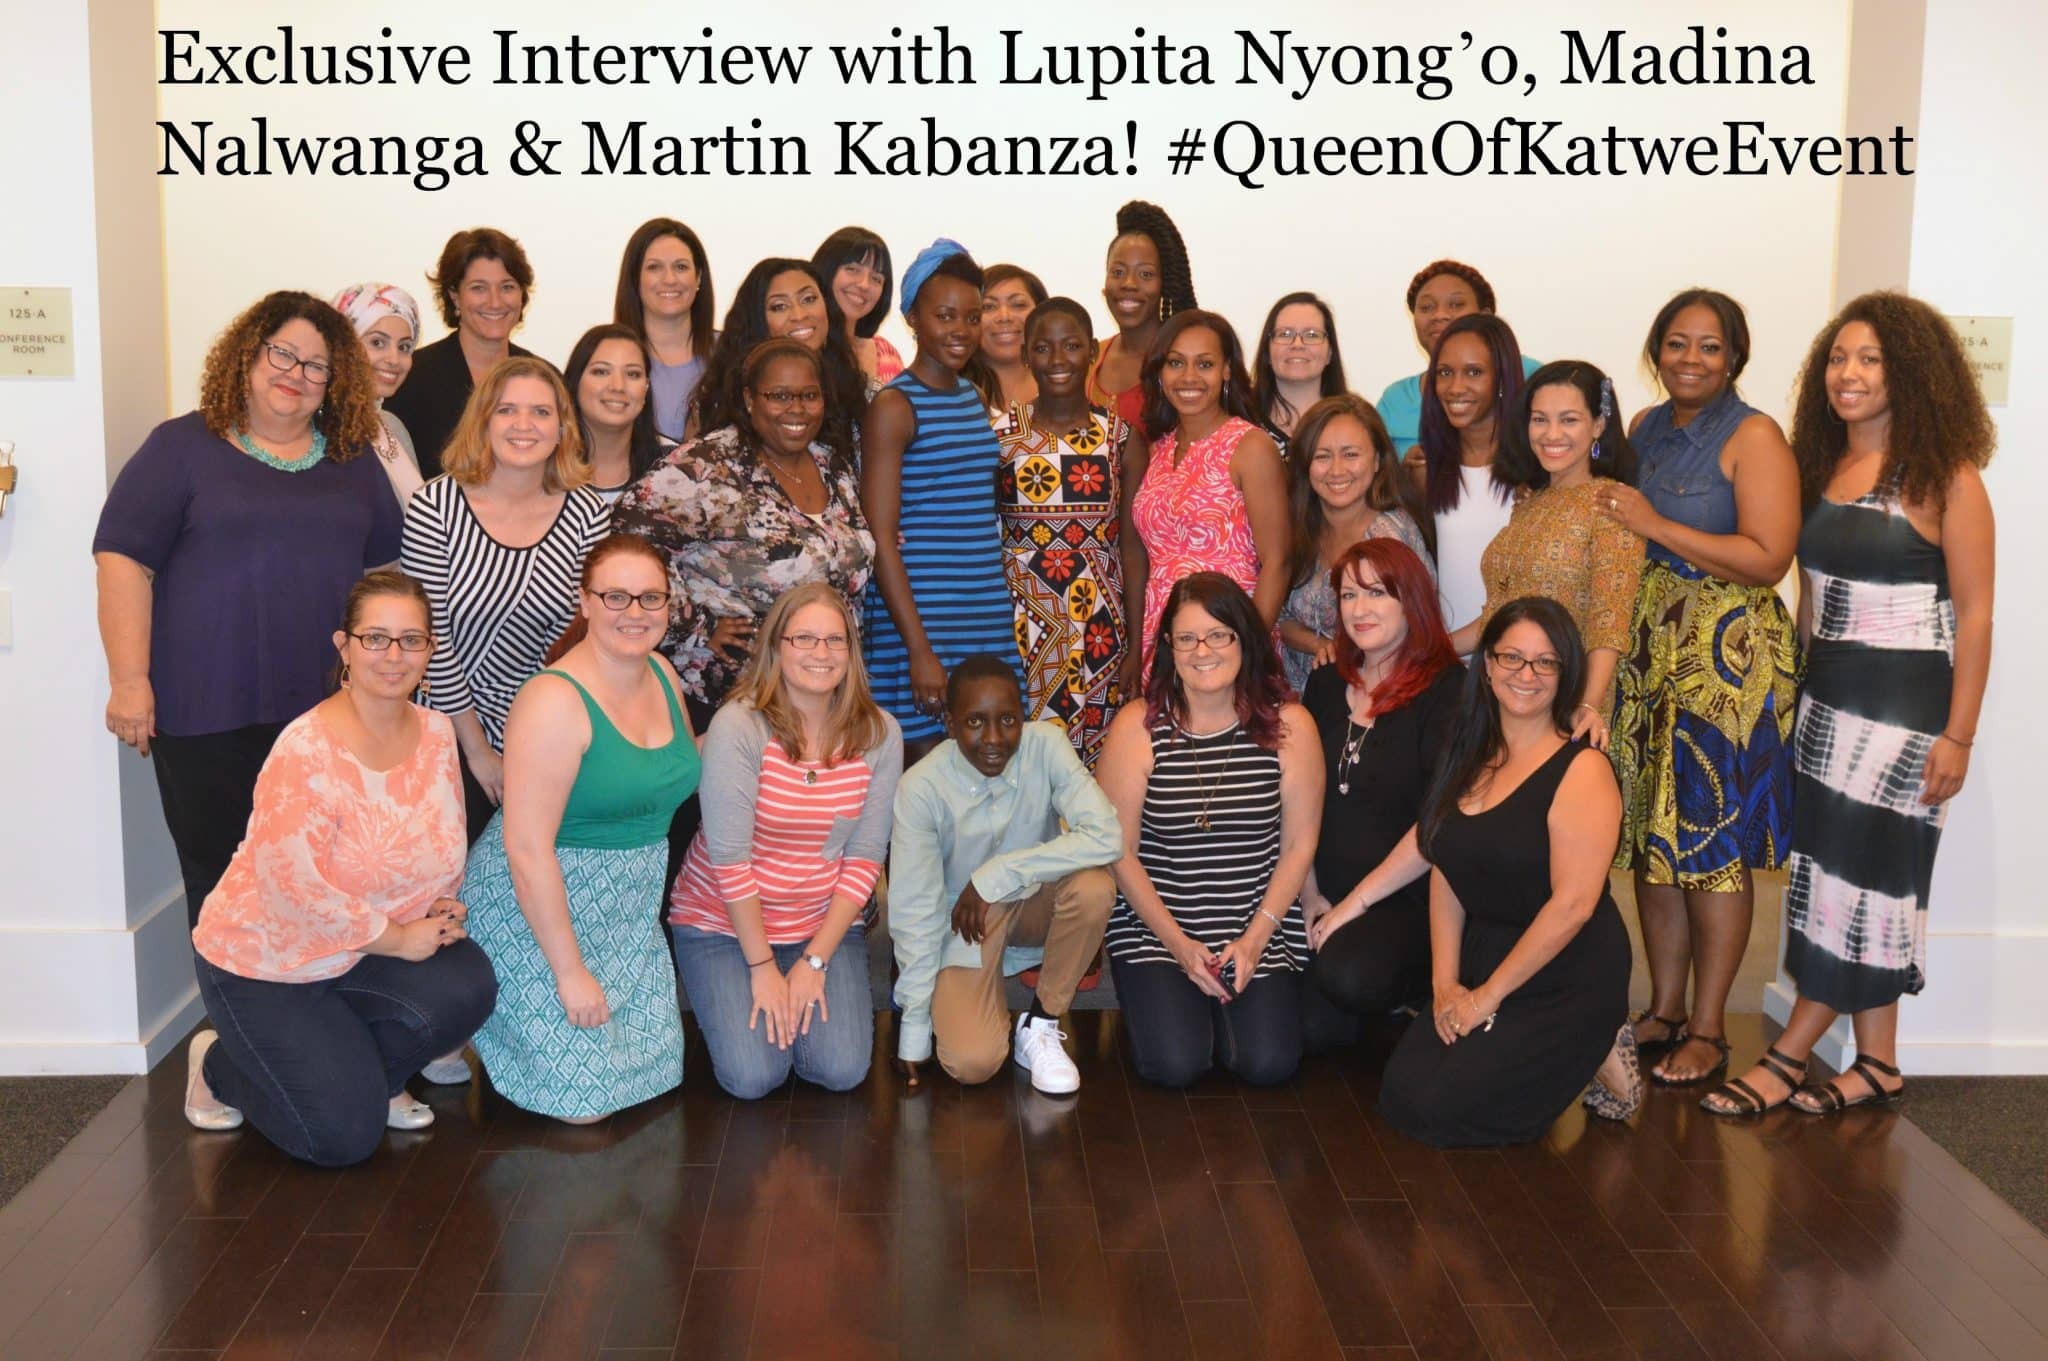 Interview with Lupita, Martin and Madina #QueenOfKatweEvent